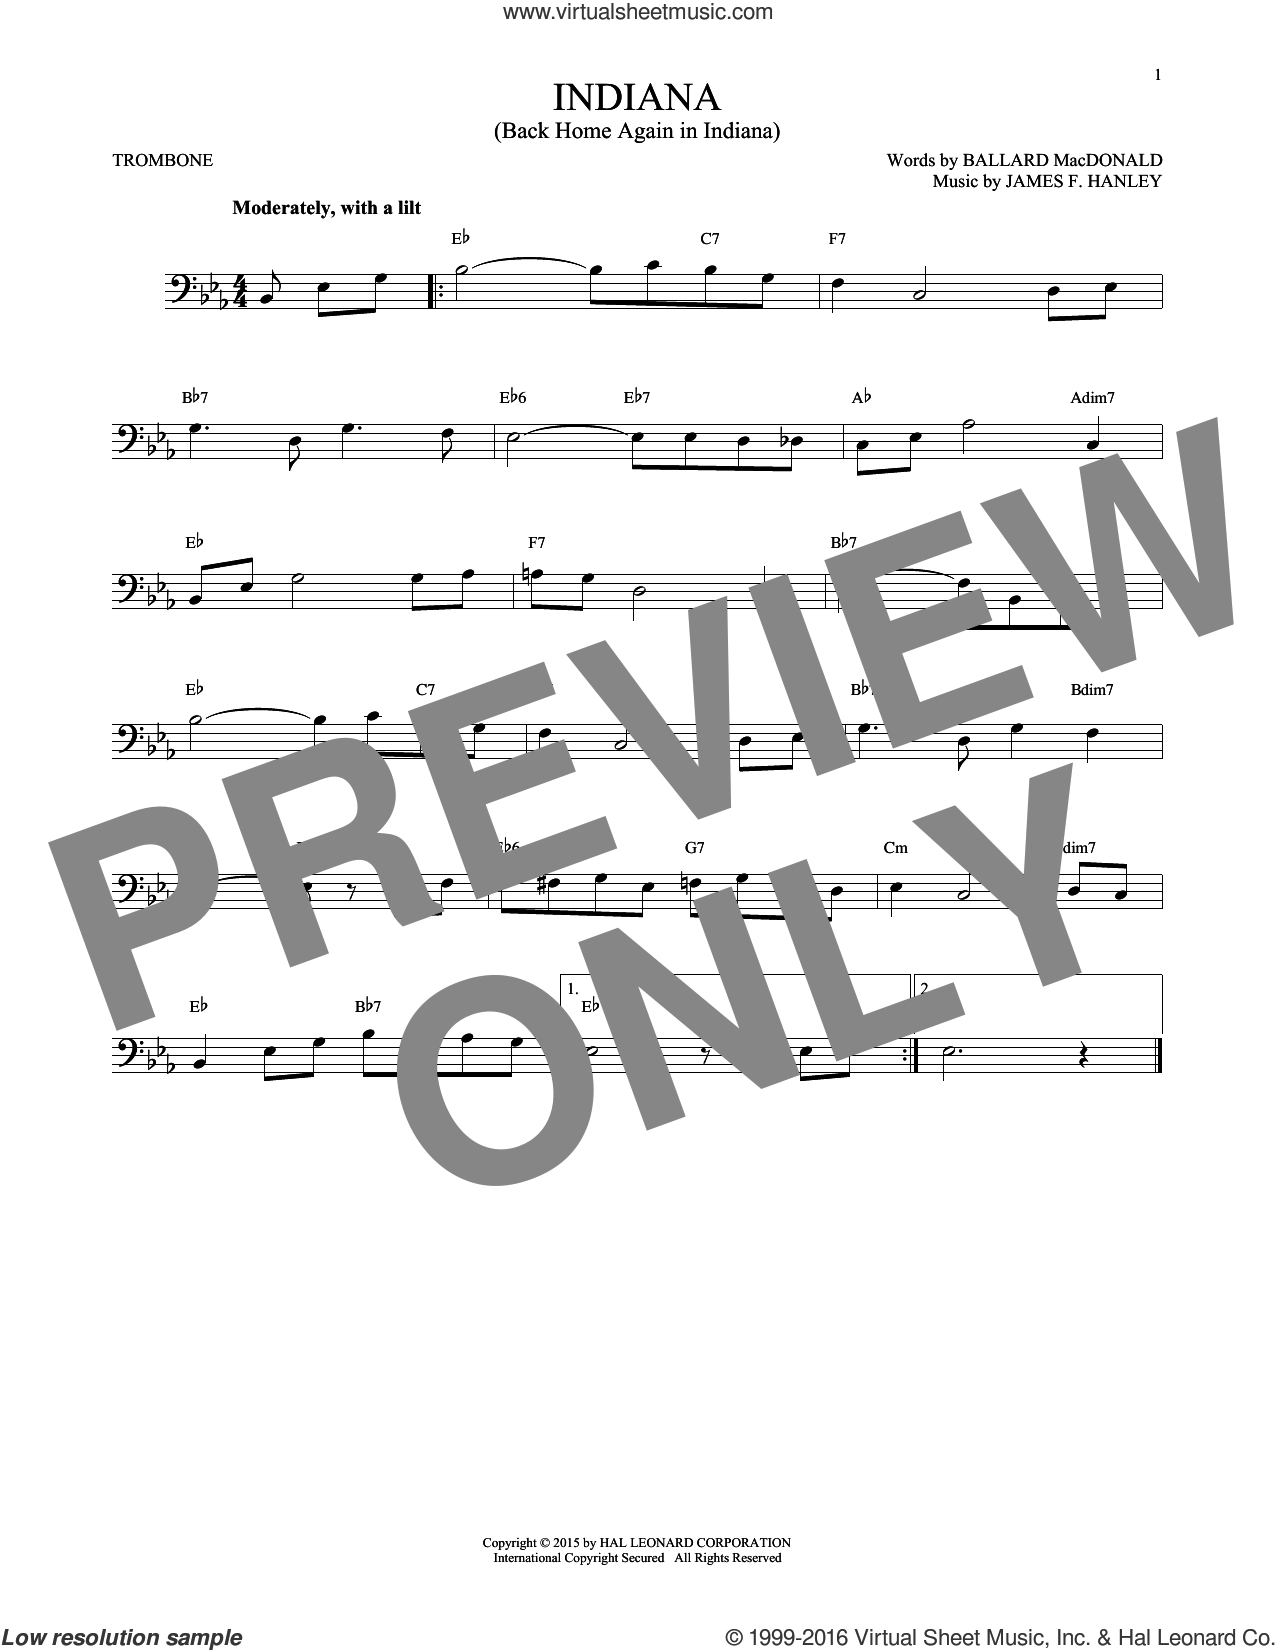 Indiana (Back Home Again In Indiana) sheet music for trombone solo by James Hanley